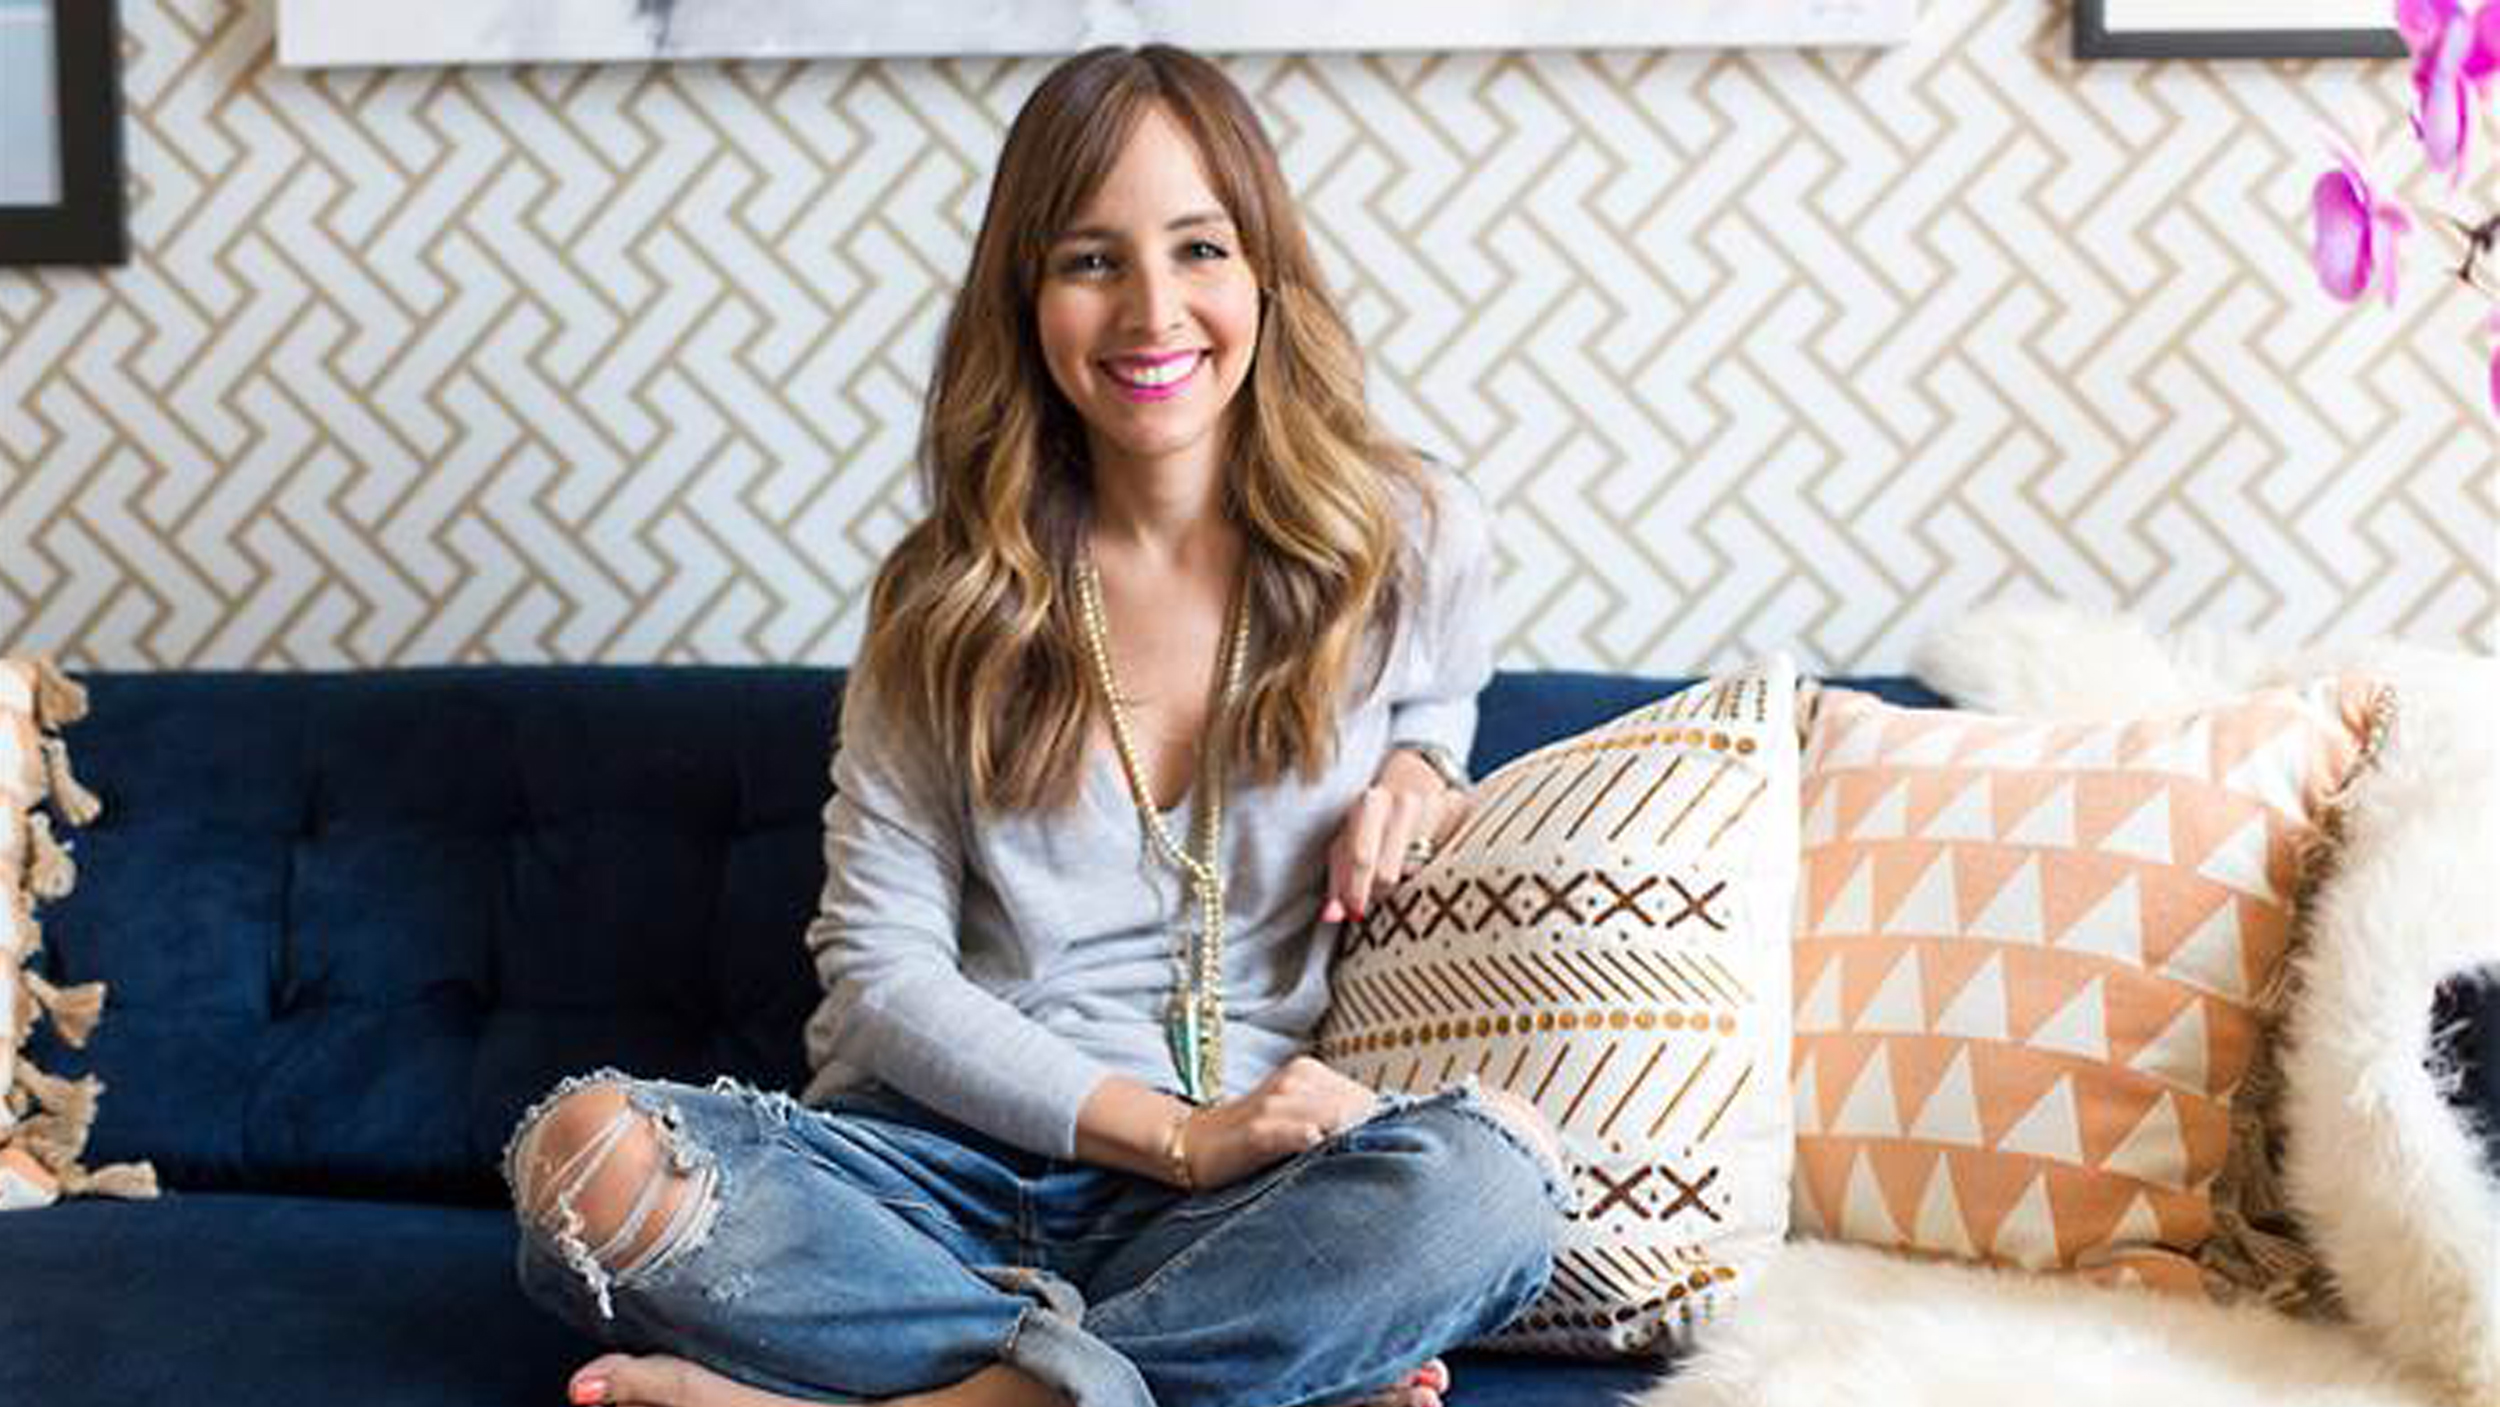 At Home With Today Visit Lilliana Vazquez In Her Fabulous